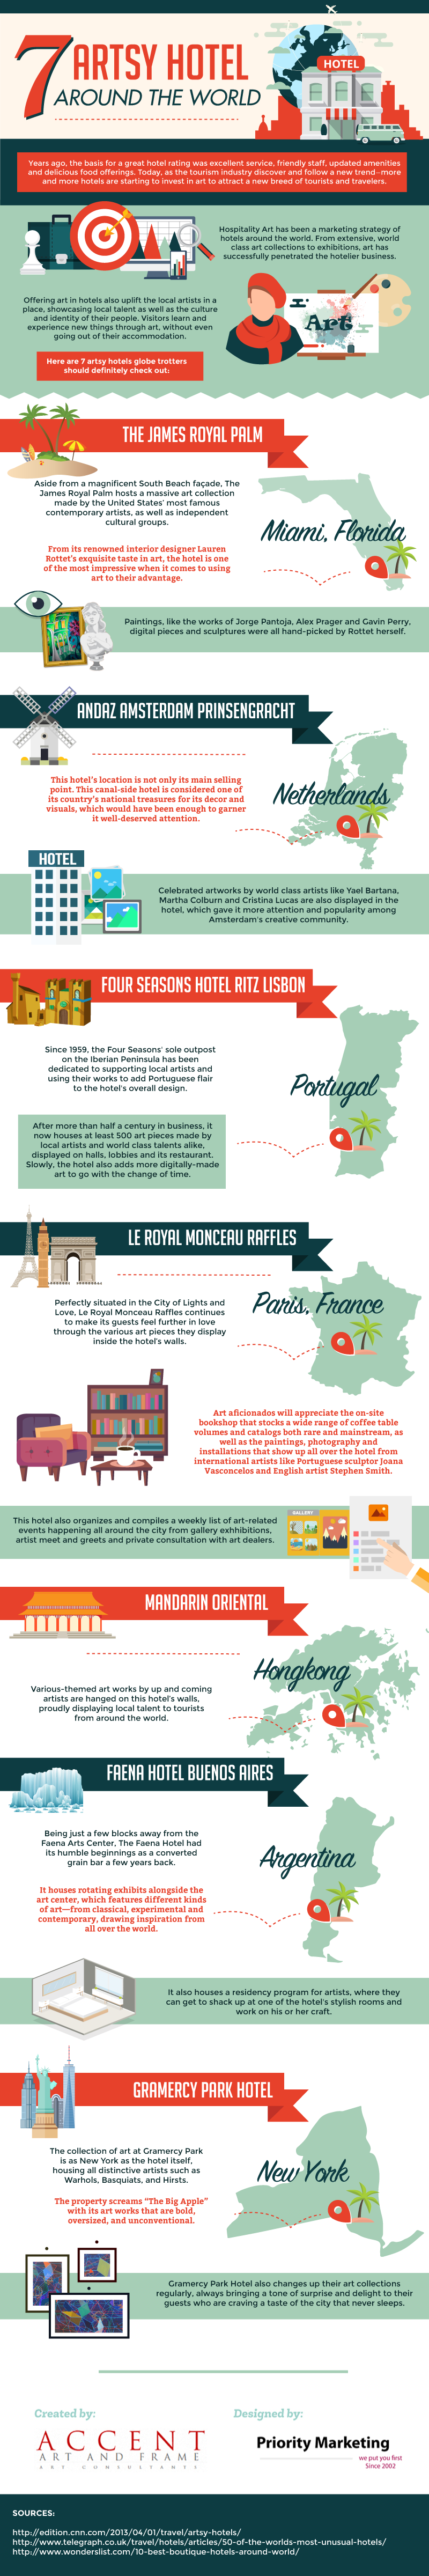 7 Artsy Hotels Around The World - Infographic